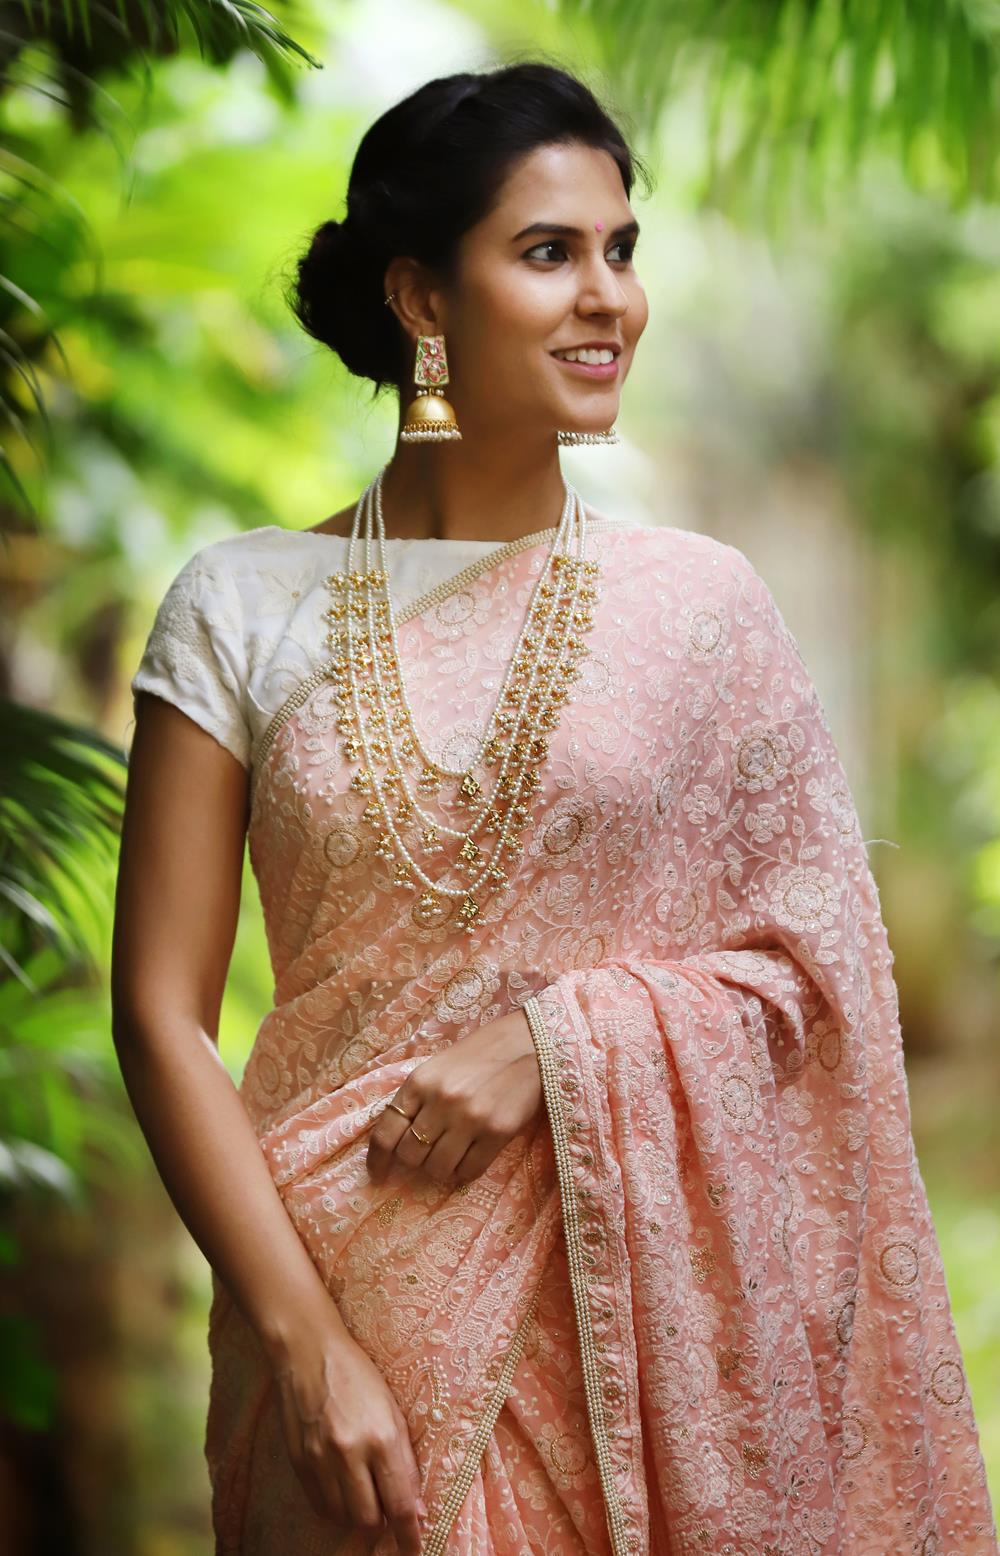 pearl-mala-necklace-collections-2019 (25)